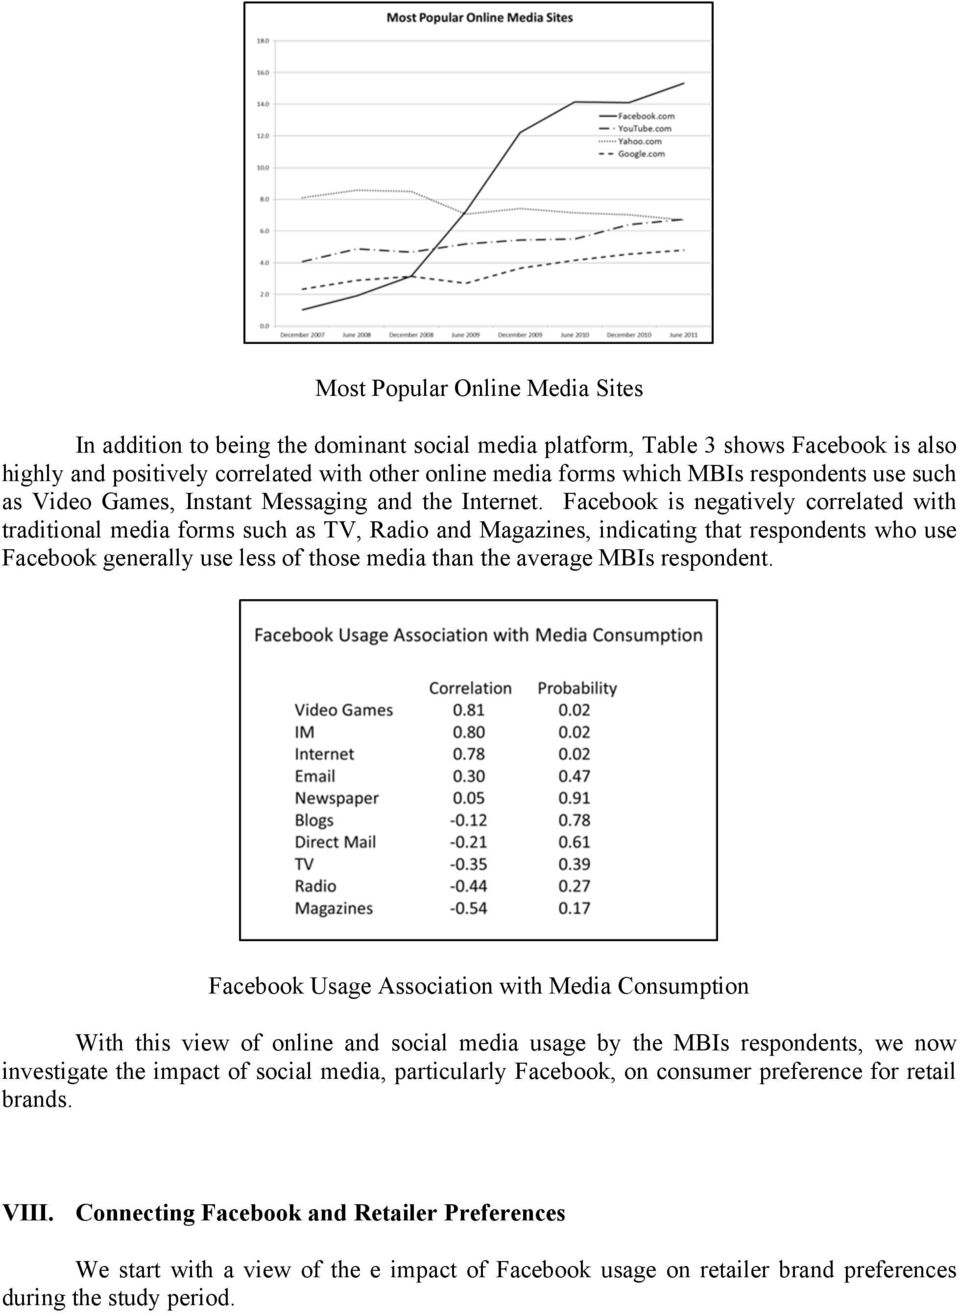 Facebook is negatively correlated with traditional media forms such as TV, Radio and Magazines, indicating that respondents who use Facebook generally use less of those media than the average MBIs